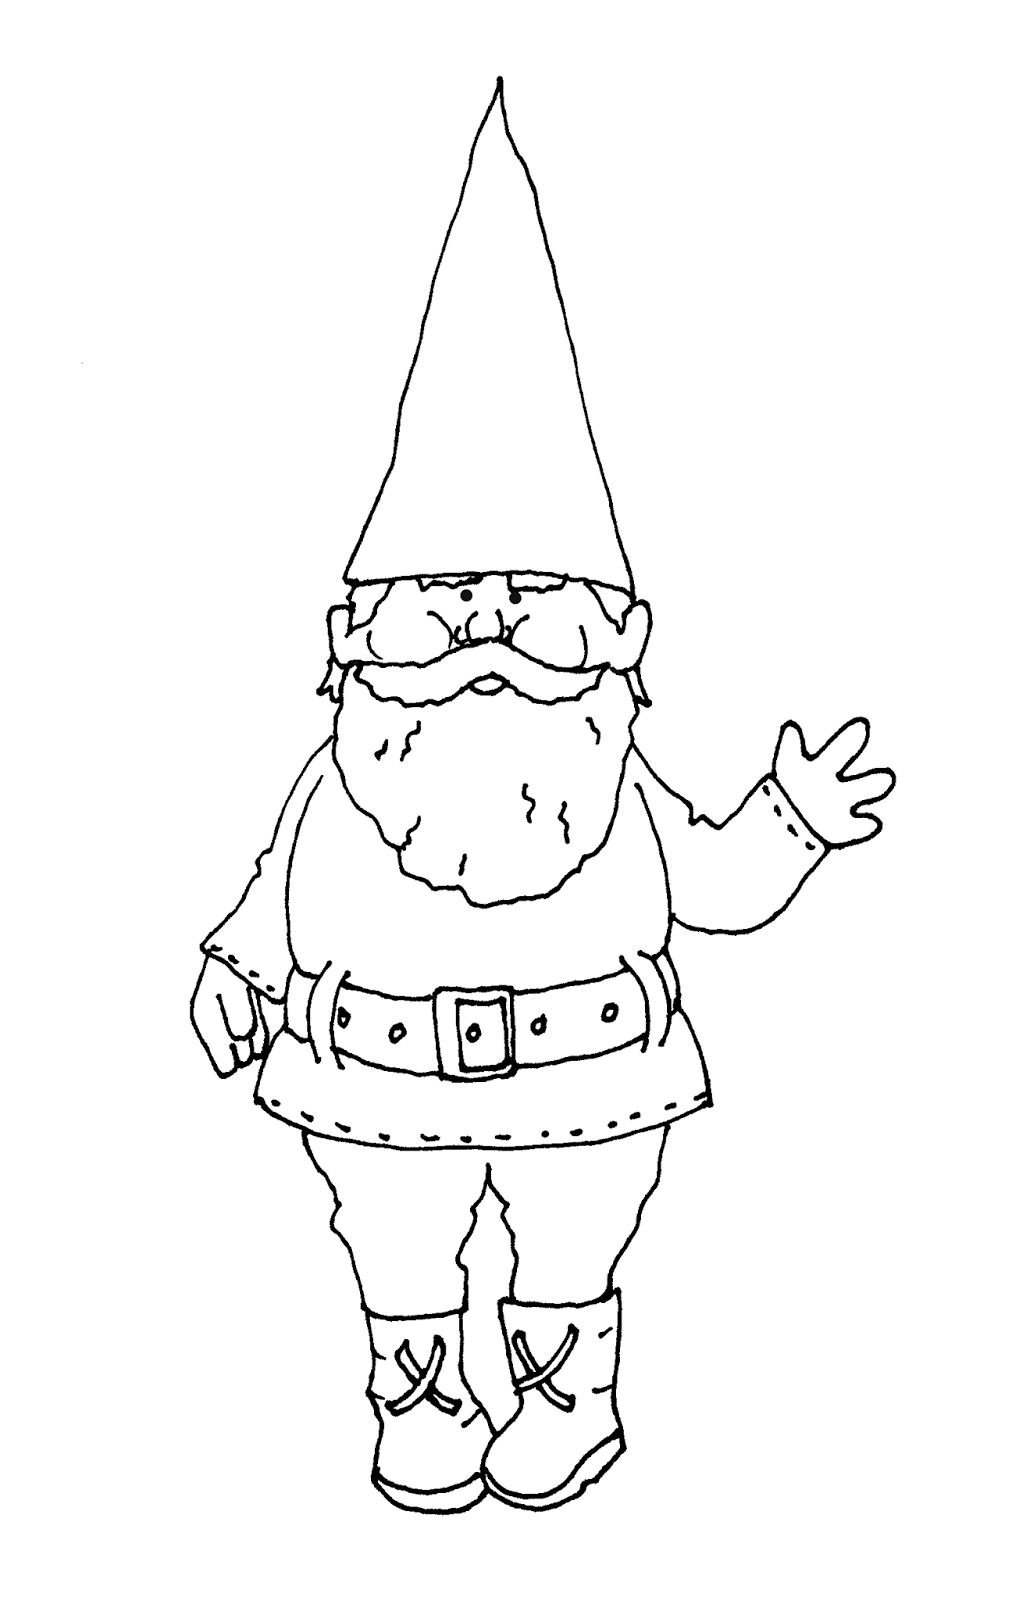 how to draw a gnome gnomes drawing at getdrawings free download draw a how to gnome